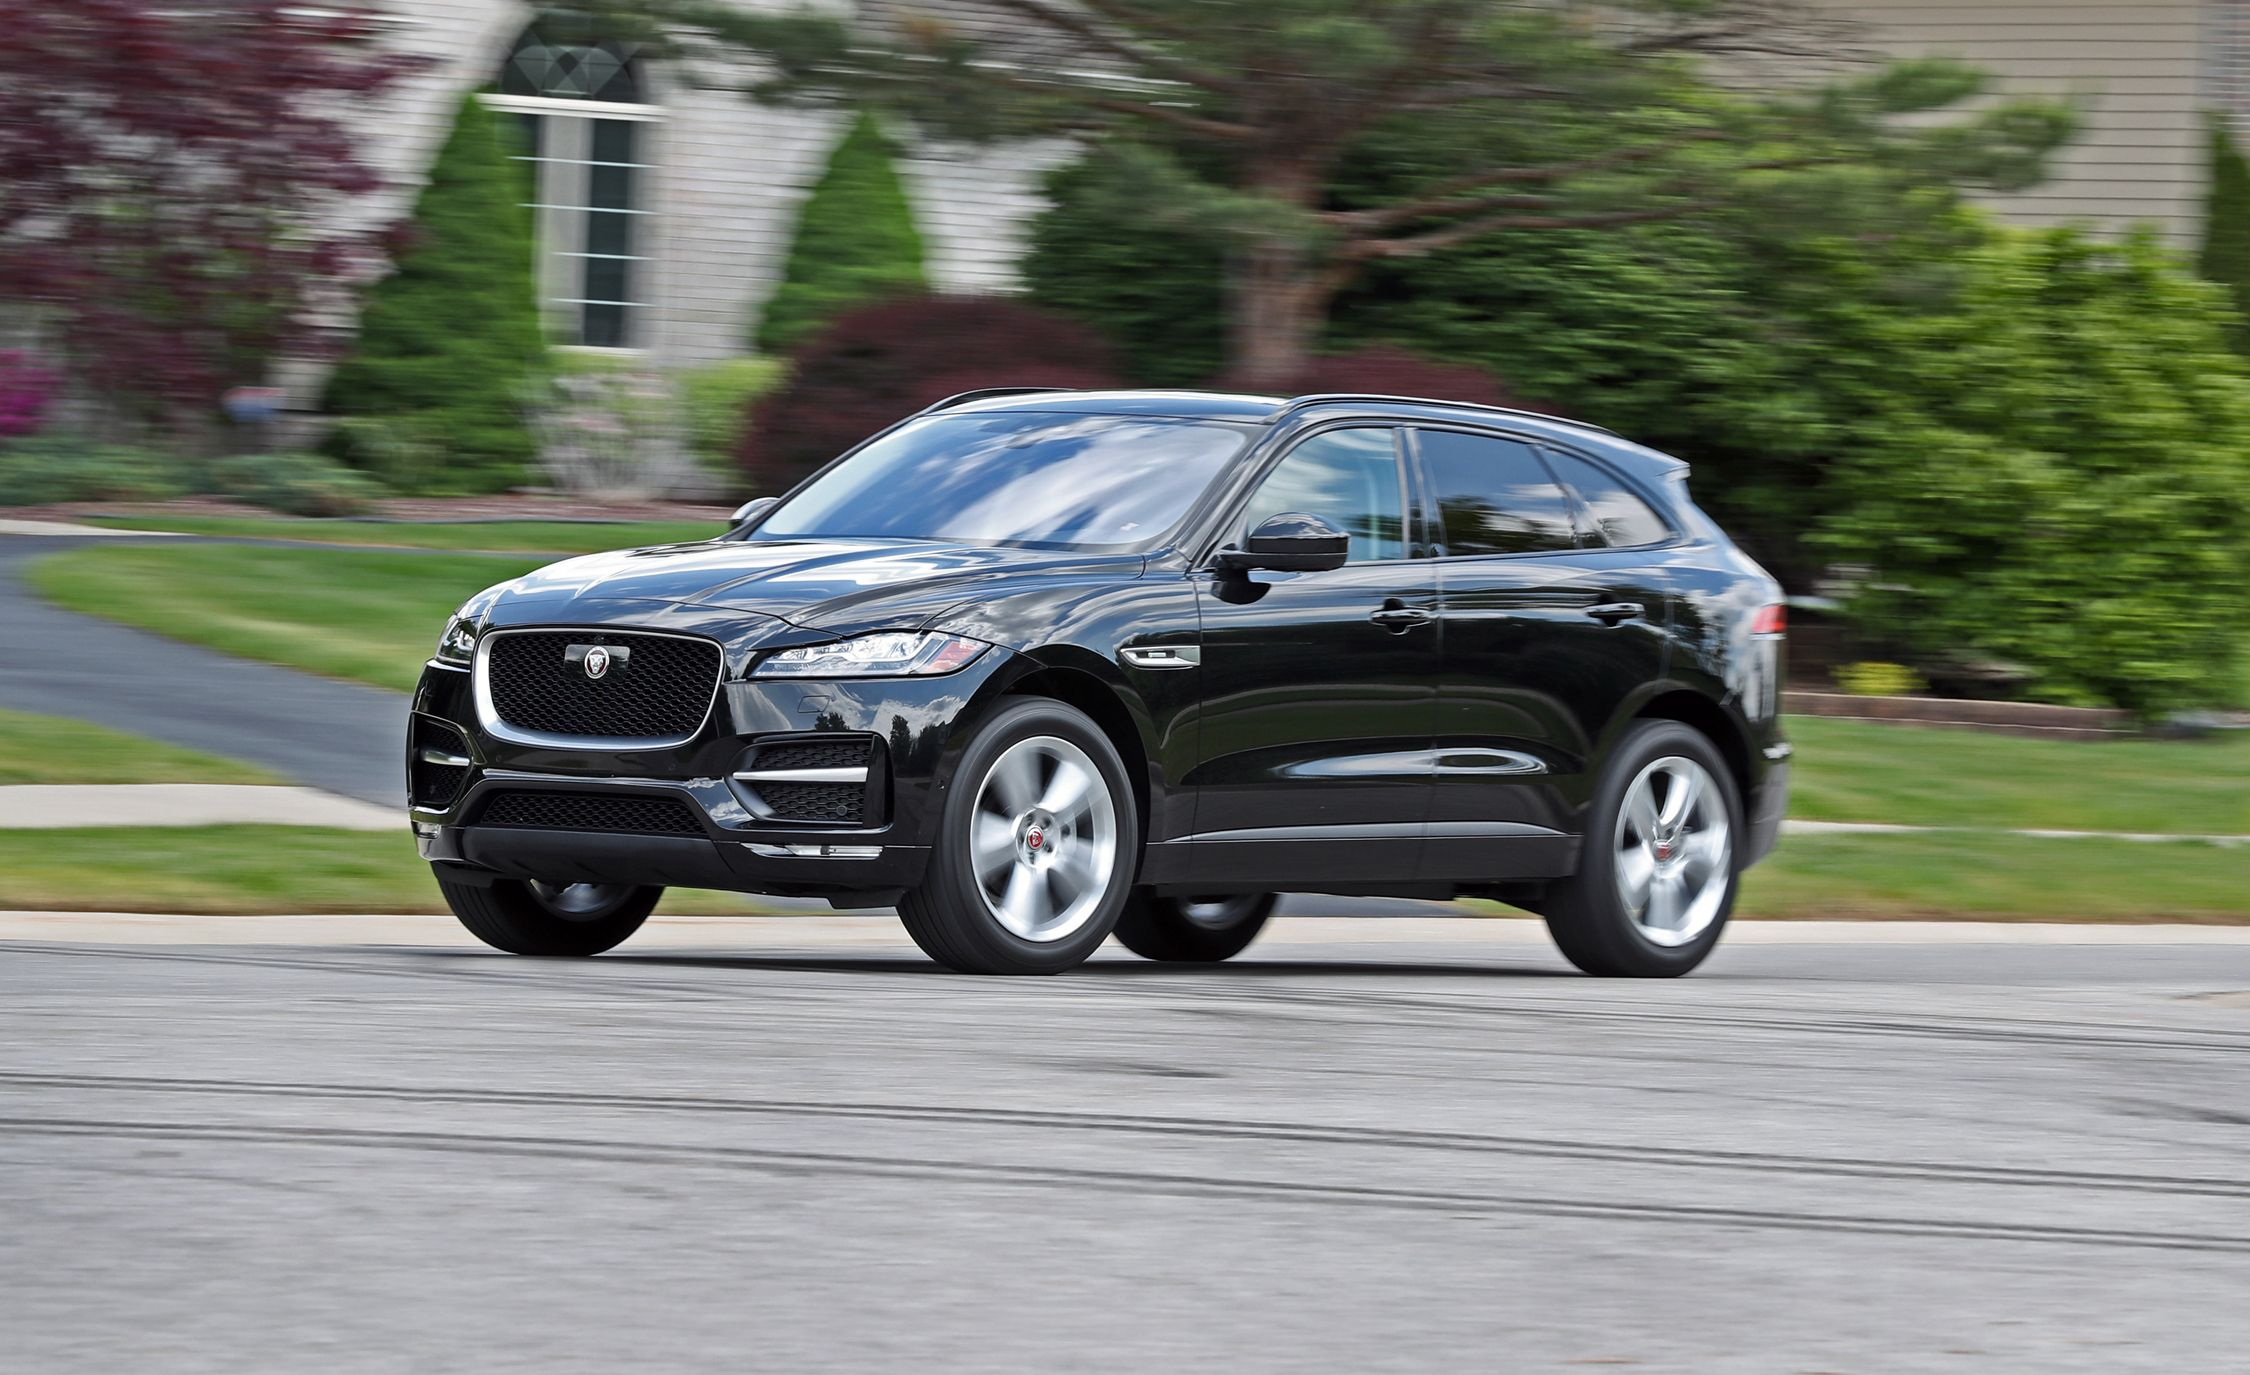 2017 Jaguar Lineup >> Jaguar F-Pace Reviews | Jaguar F-Pace Price, Photos, and Specs | Car and Driver